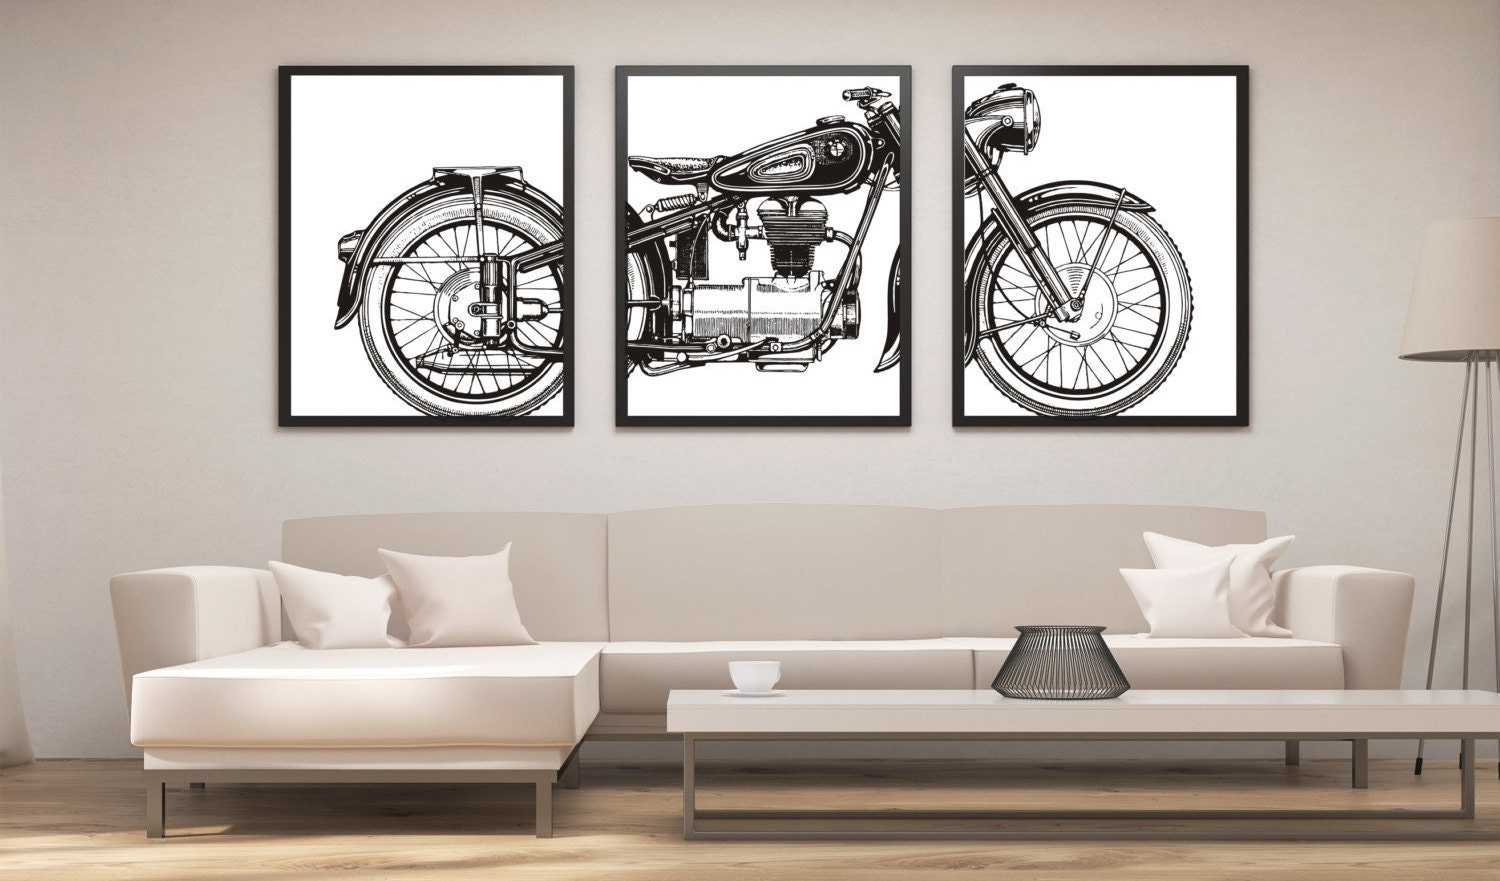 Exceptionnel Motorcycle Print Set, Motorcycle Panel Art, Panel Wall Art, Motorcycle Art,  Man Cave Wall Decor, Large Wall Art, Gifts For Him, Office Art